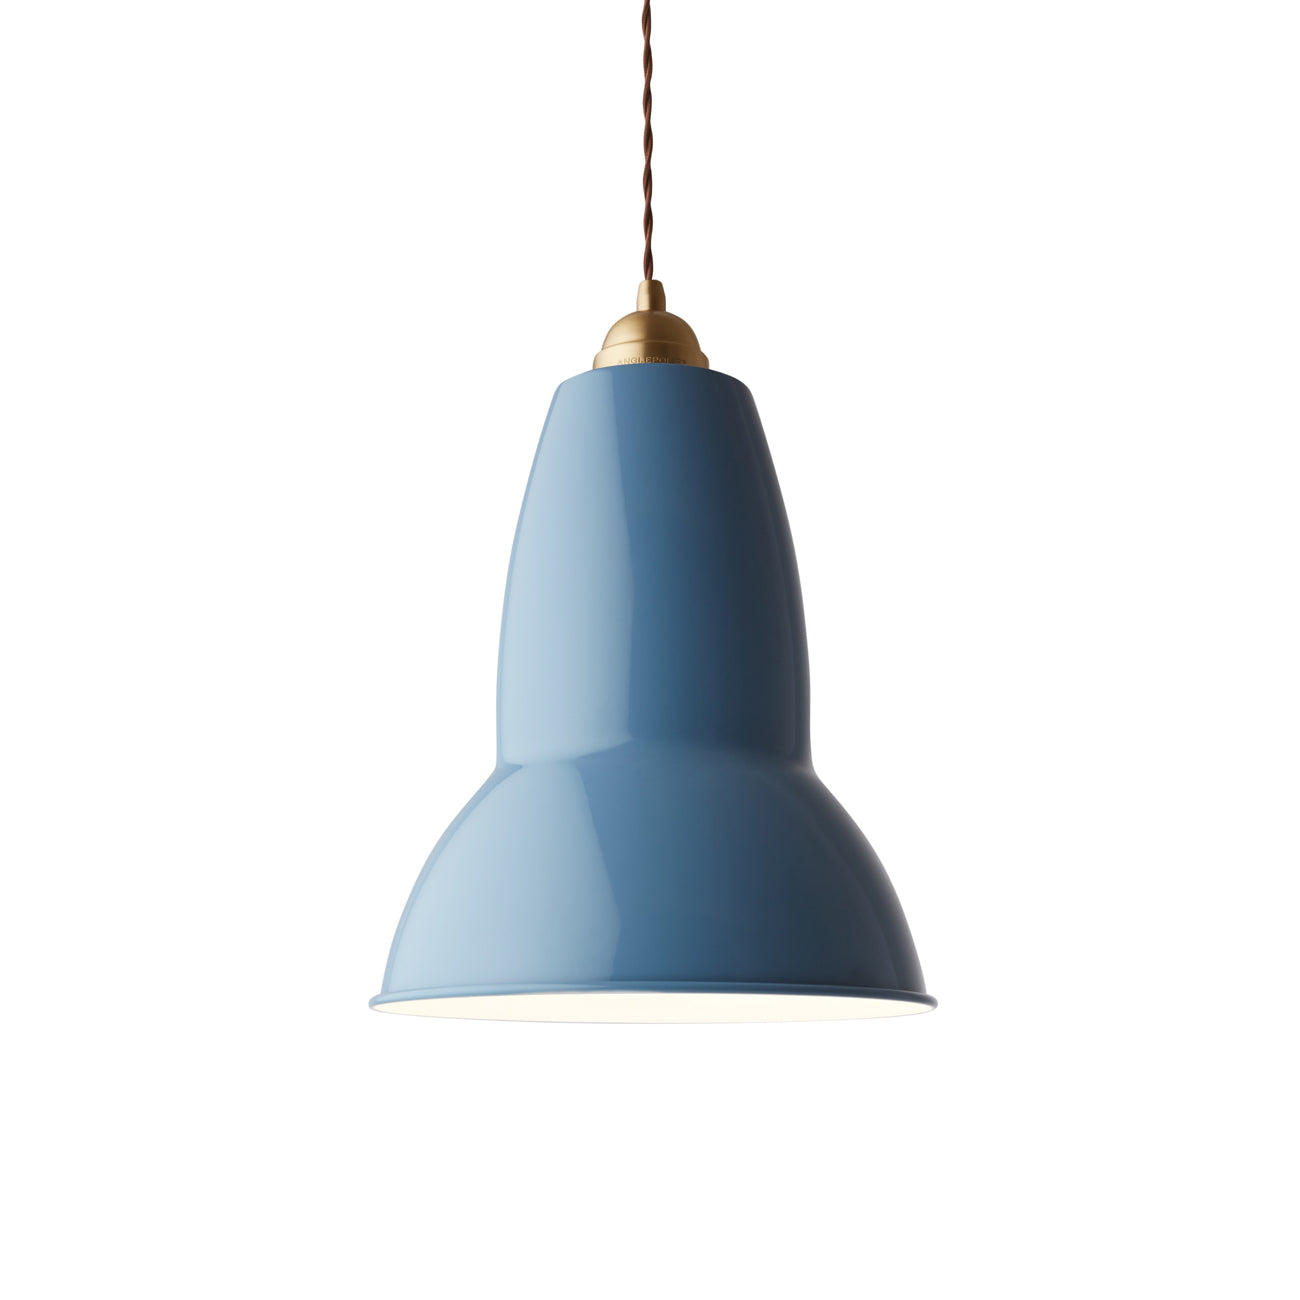 Anglepoise Giant 1227 pendant light in dusty blue with brass detail from Warehouse Home